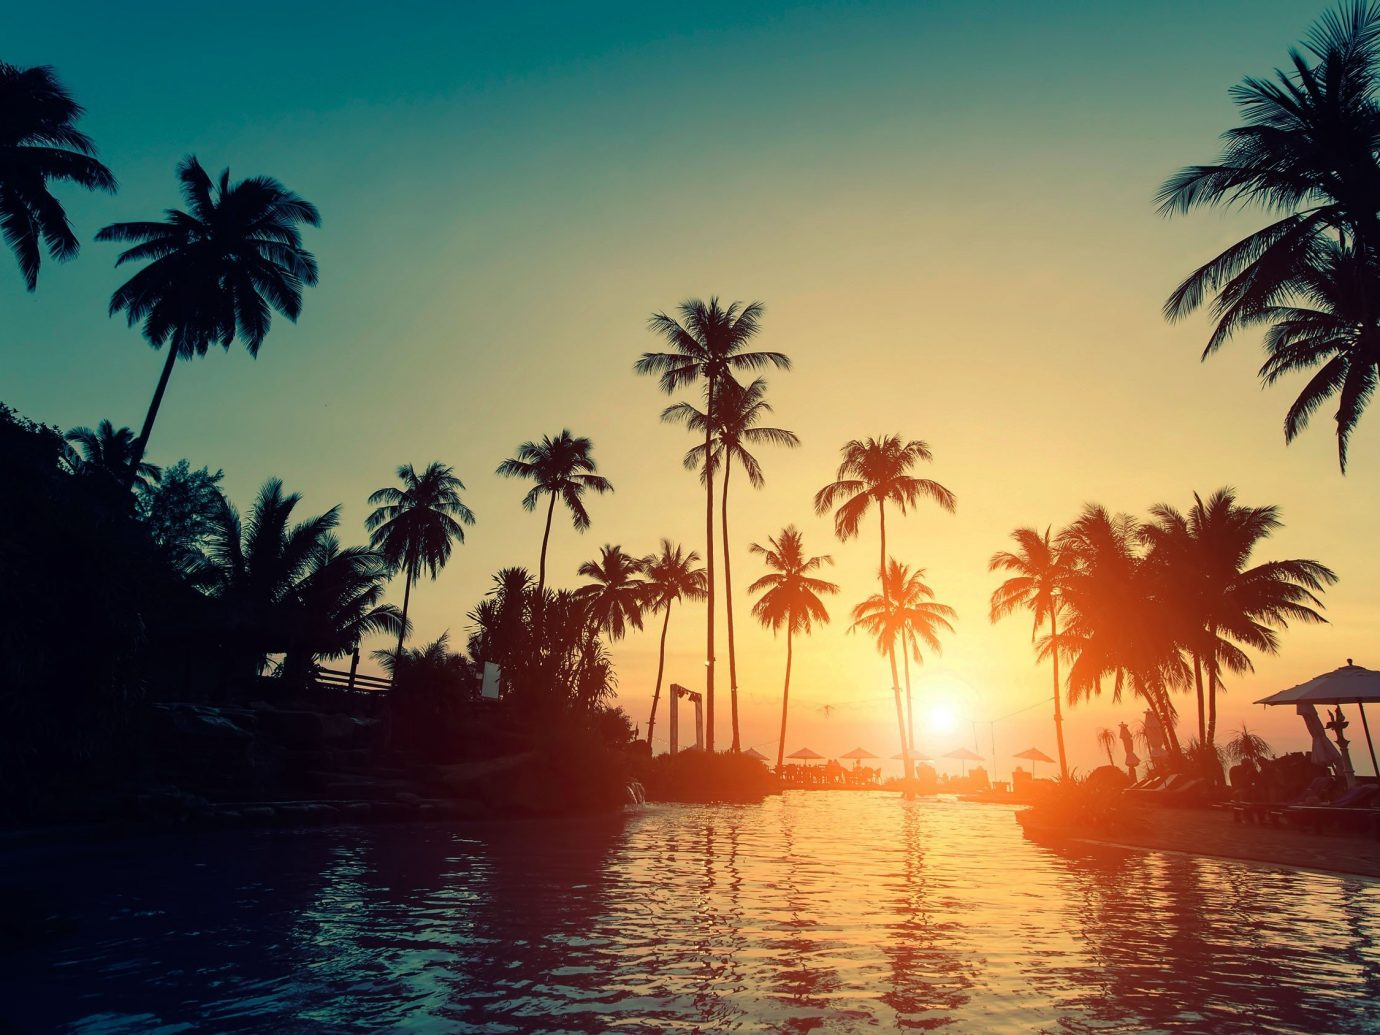 Jetsetter Guides tree palm sky outdoor water Sun Sunset palm family Ocean Sea arecales tropics woody plant dusk sunlight evening caribbean bay Lagoon plant setting shore